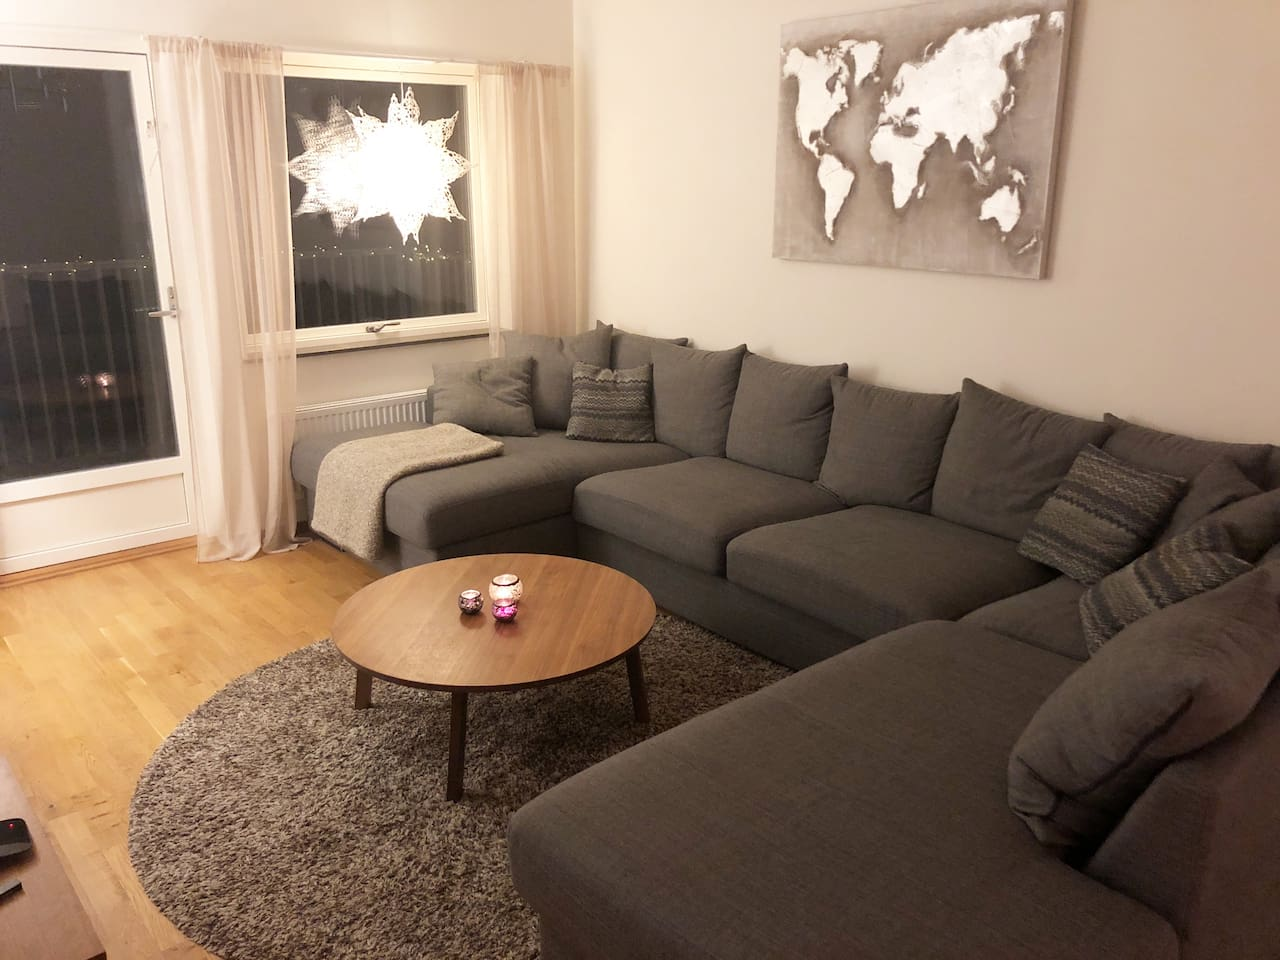 Livingroom with large sofa and tv